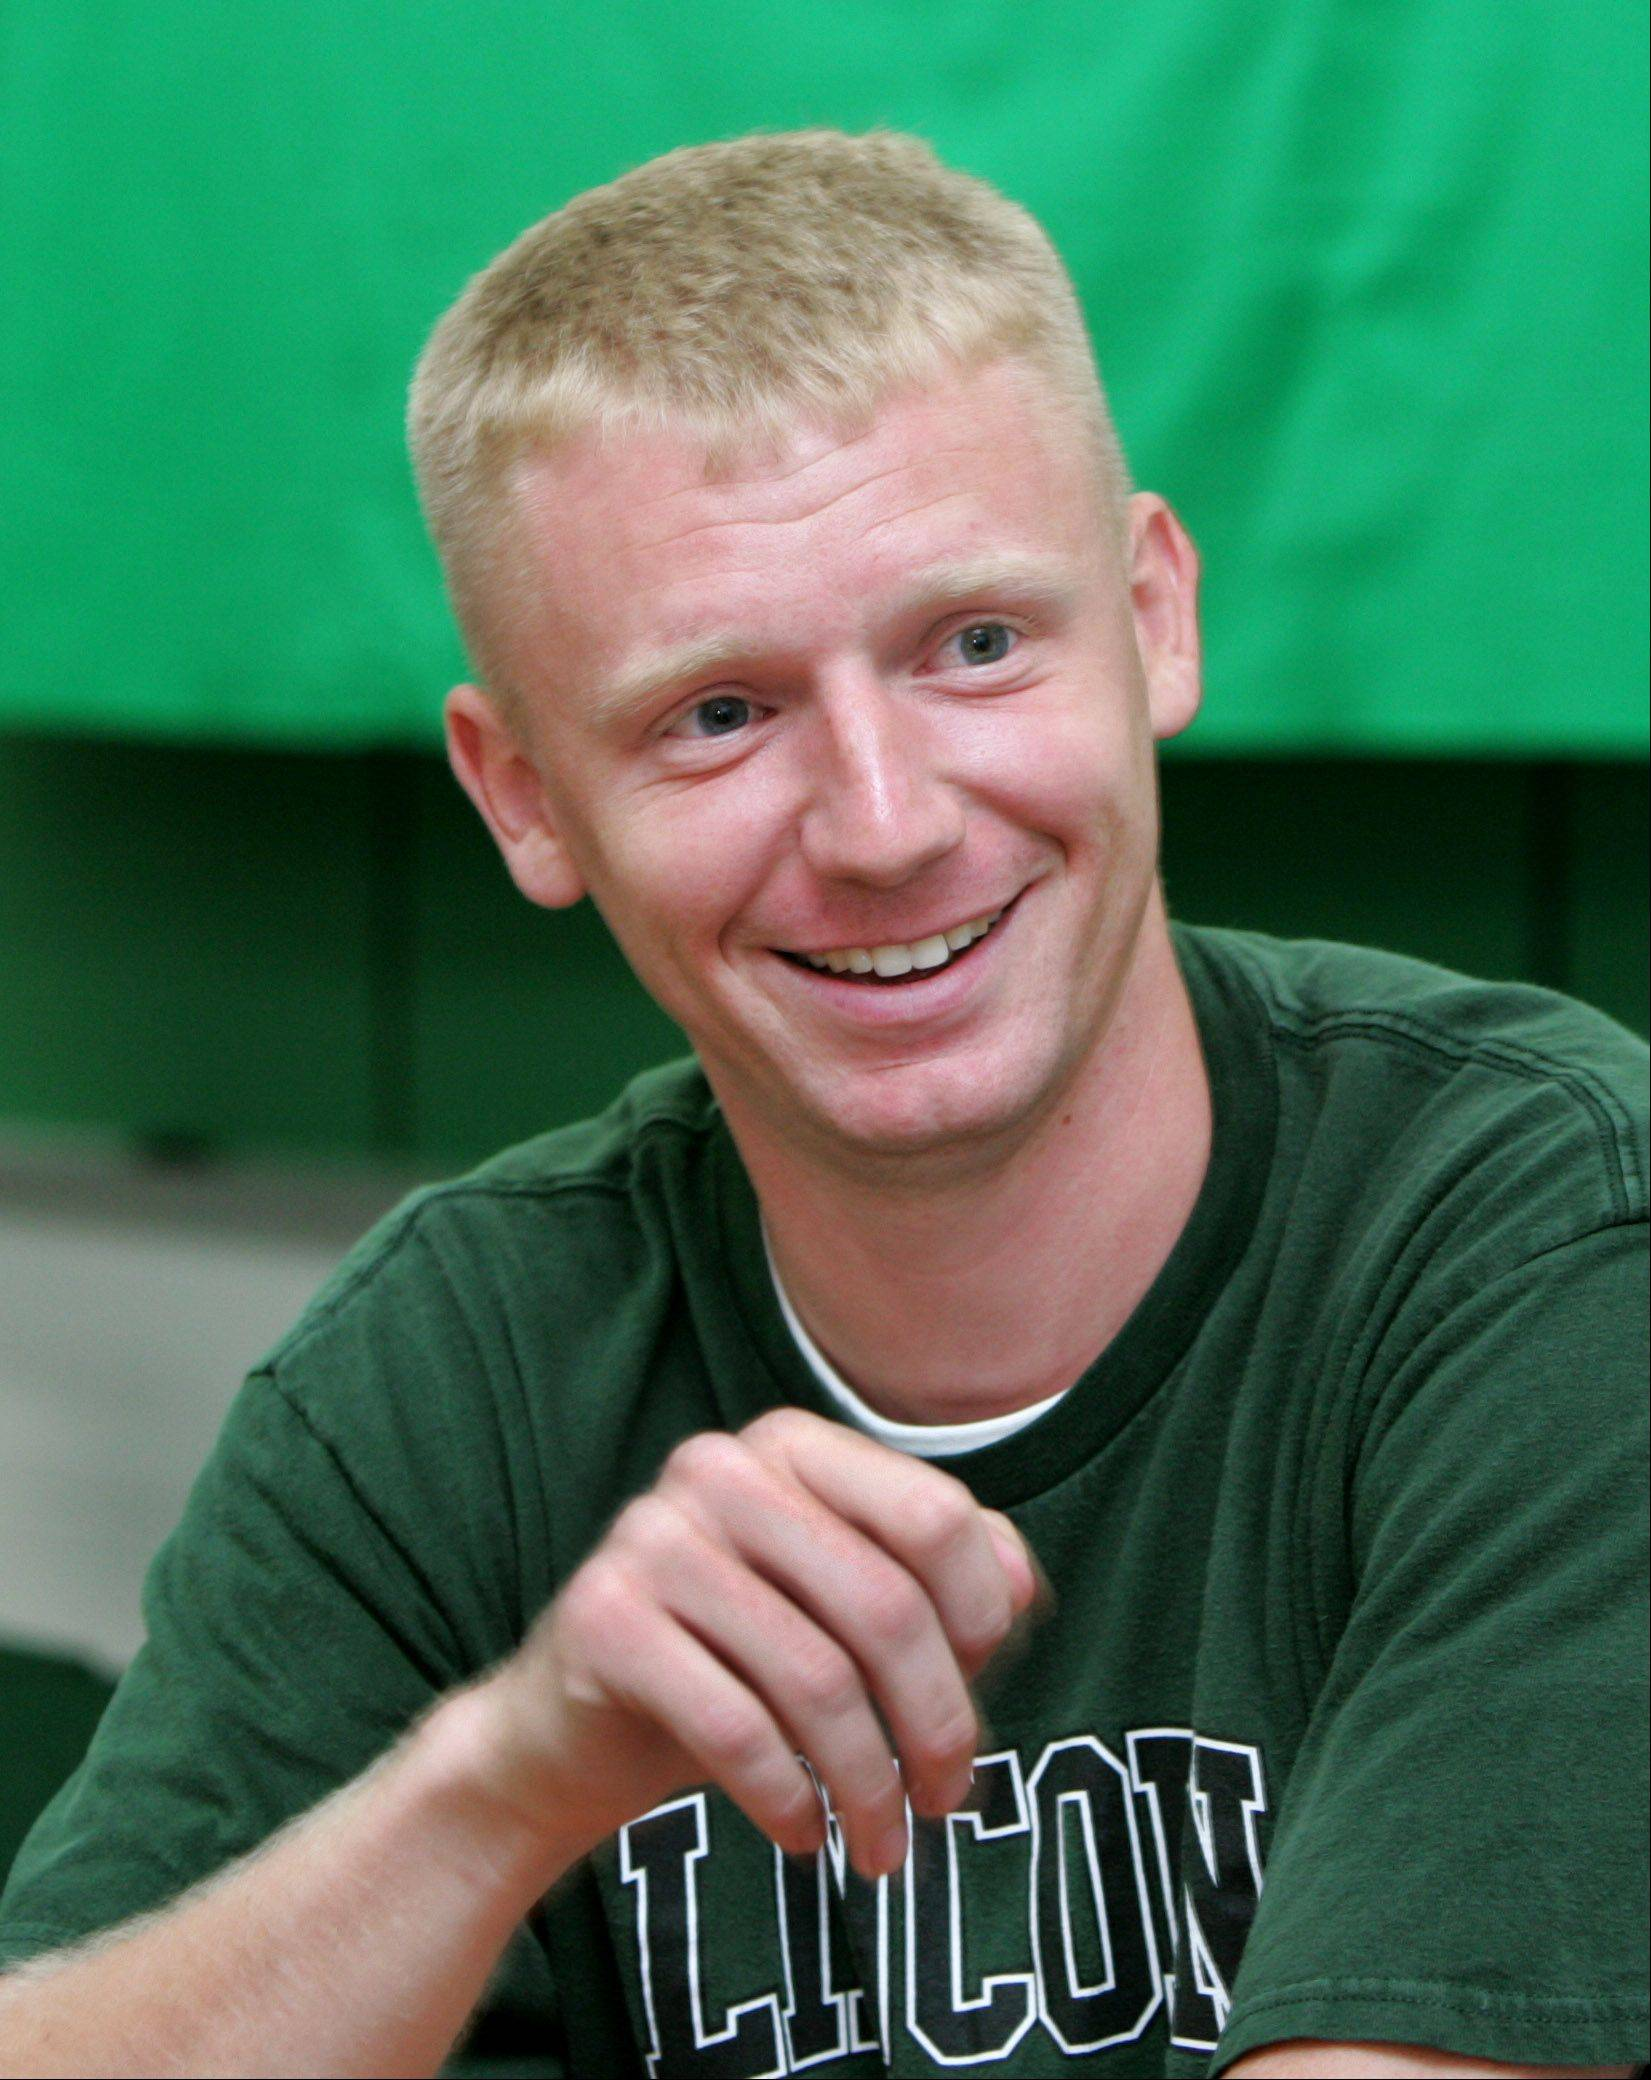 Naperville teacher Josh Stumpenhorst was named this week as the Illinois Education Association's Teacher of the Year.